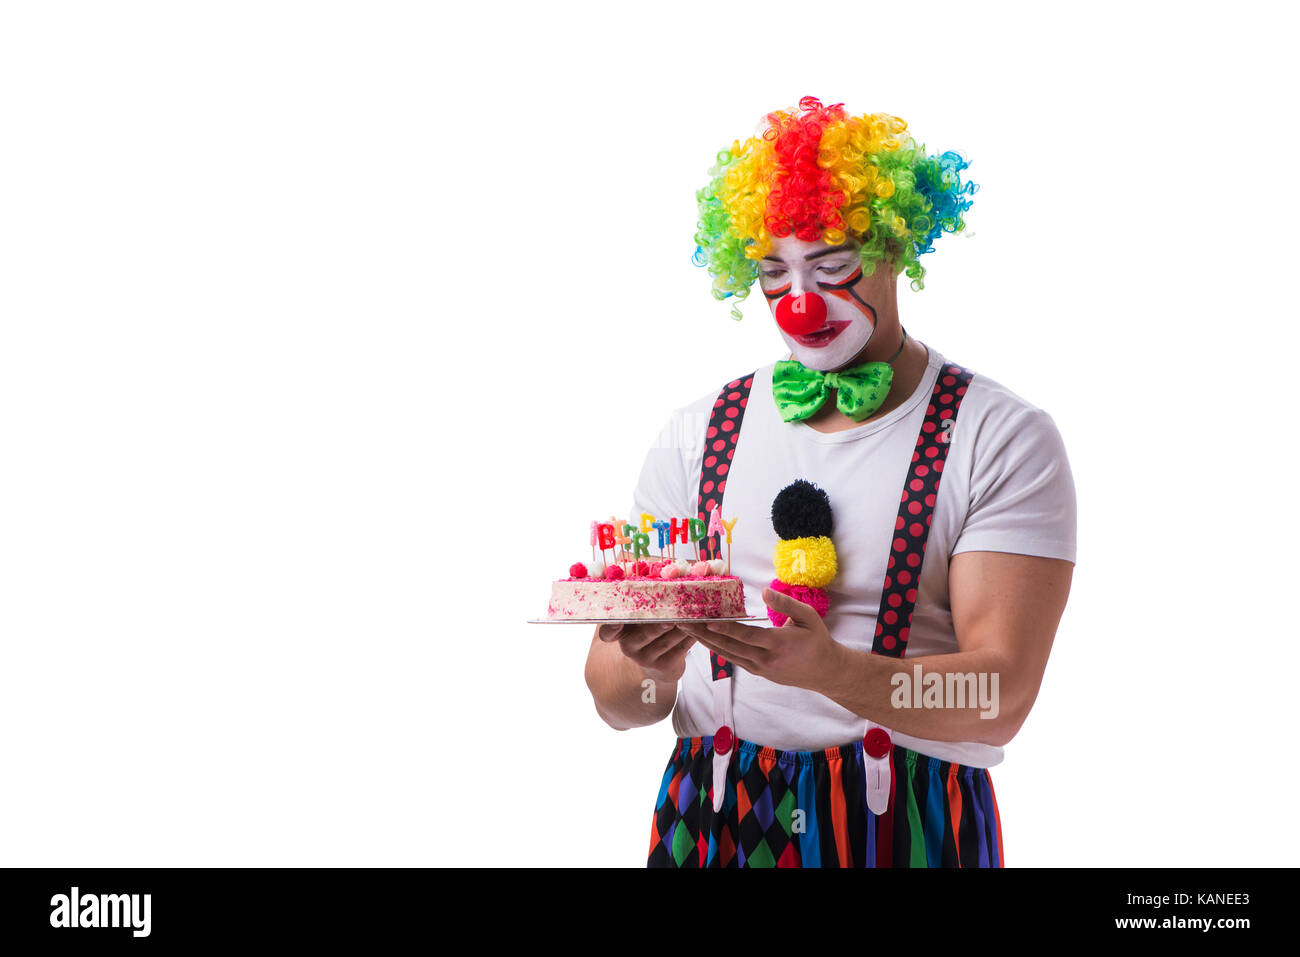 Funny Clown With A Birthday Cake Isolated On White Background Stock